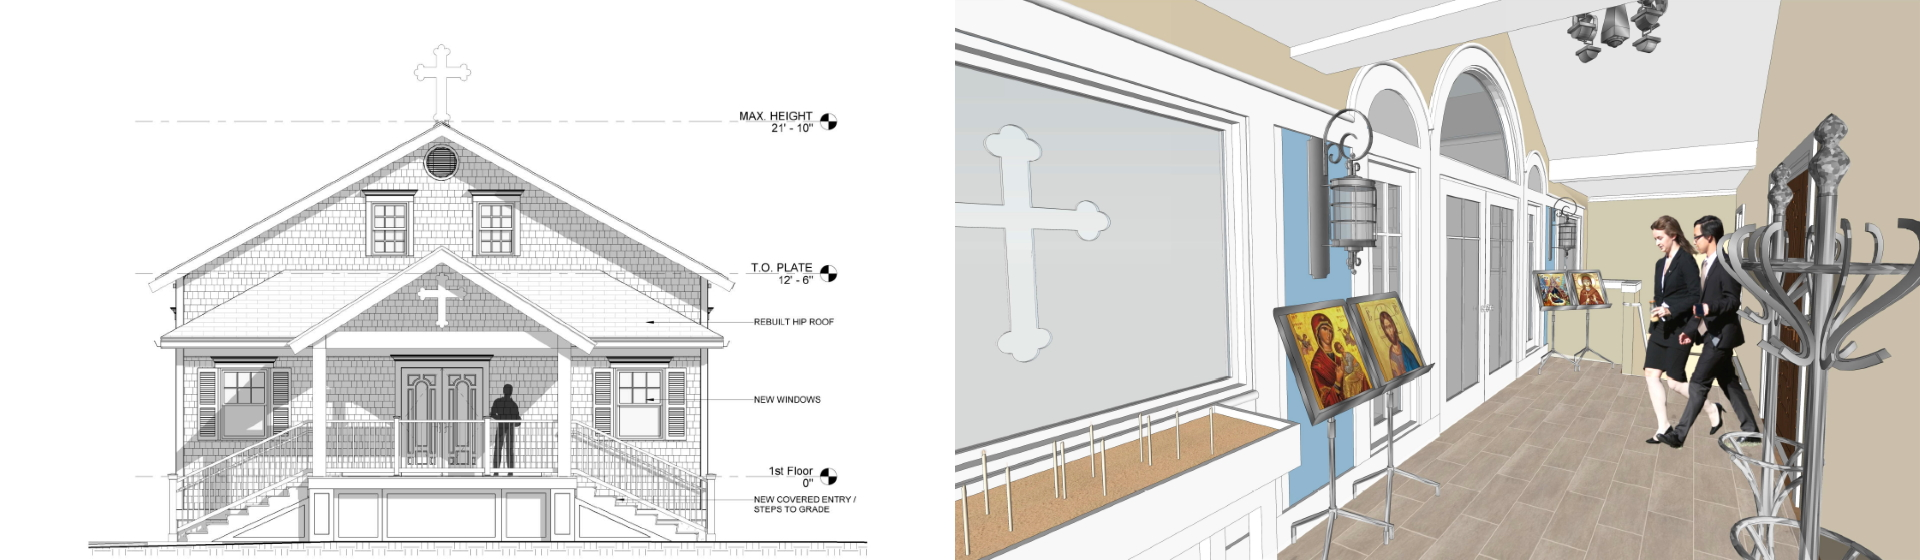 Narthex Project